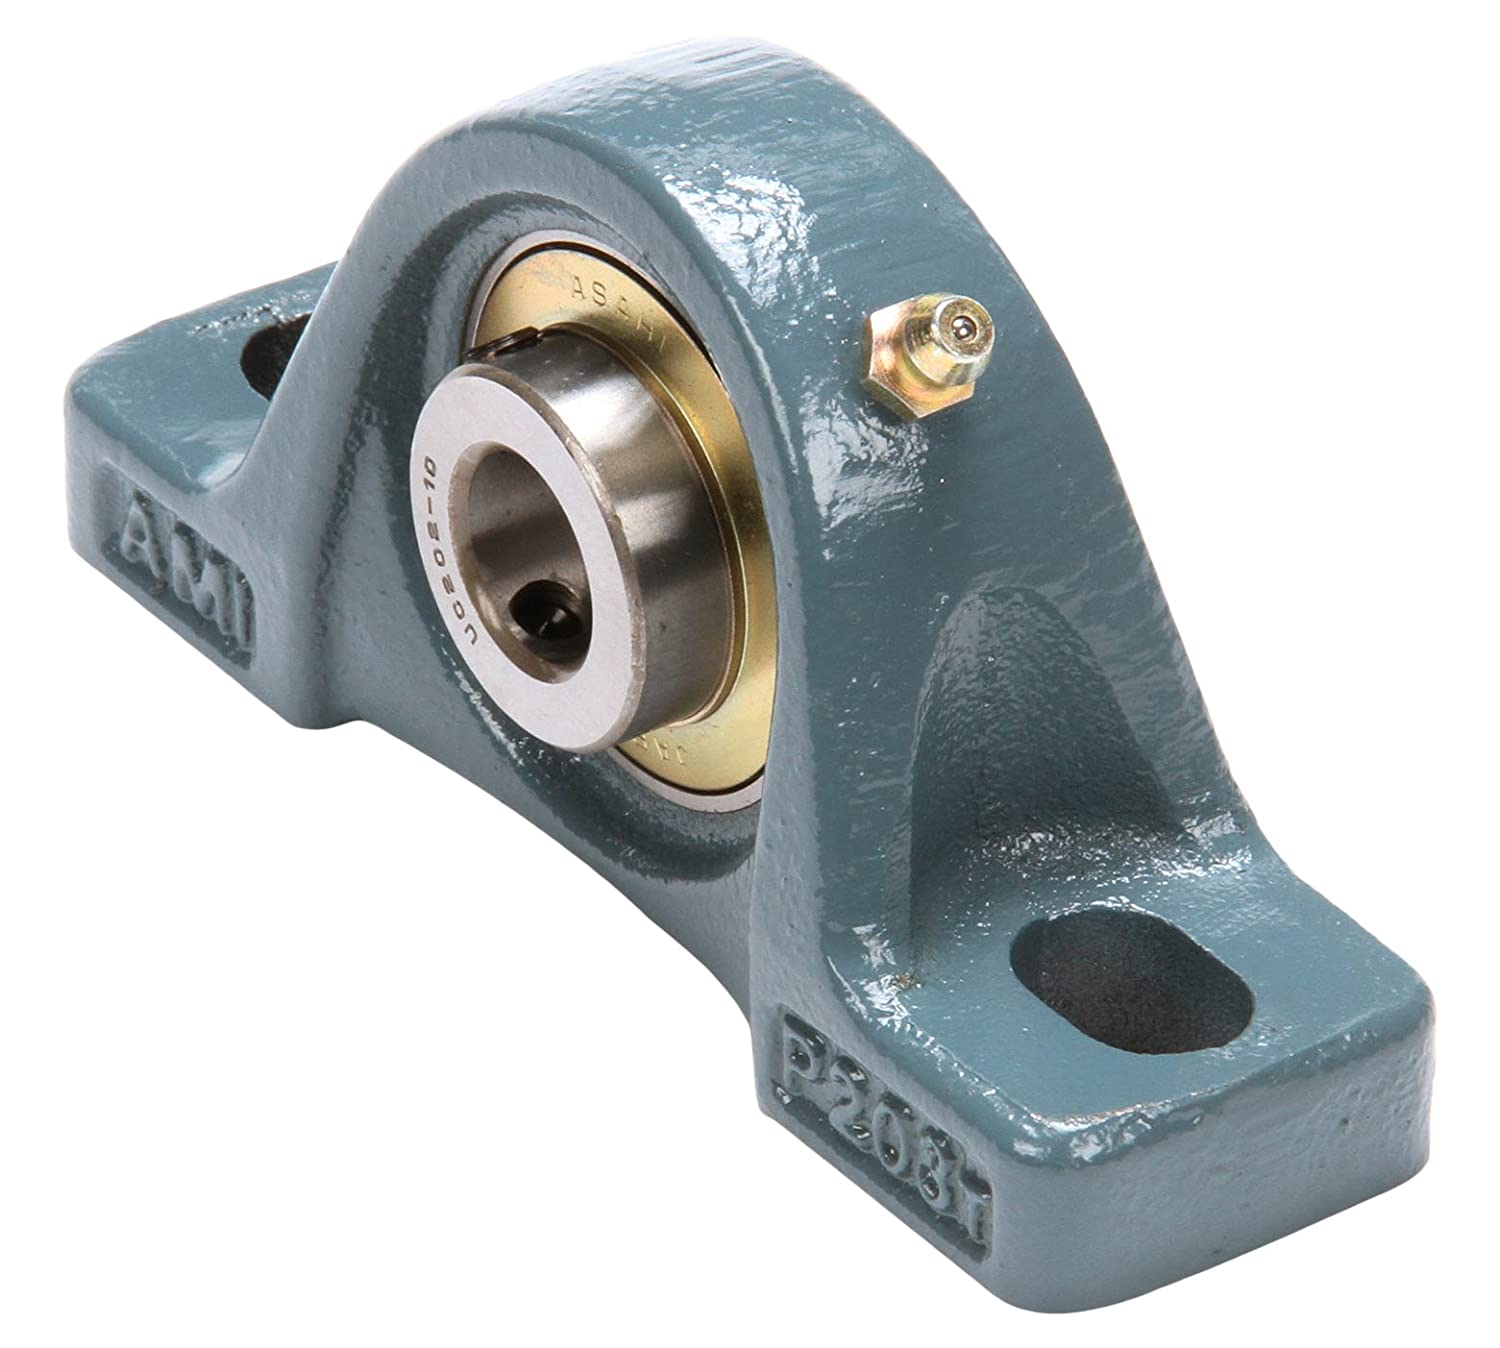 Image of Bearing Housings Picard Ovens ME24-0078 Bearing Support 5/8'